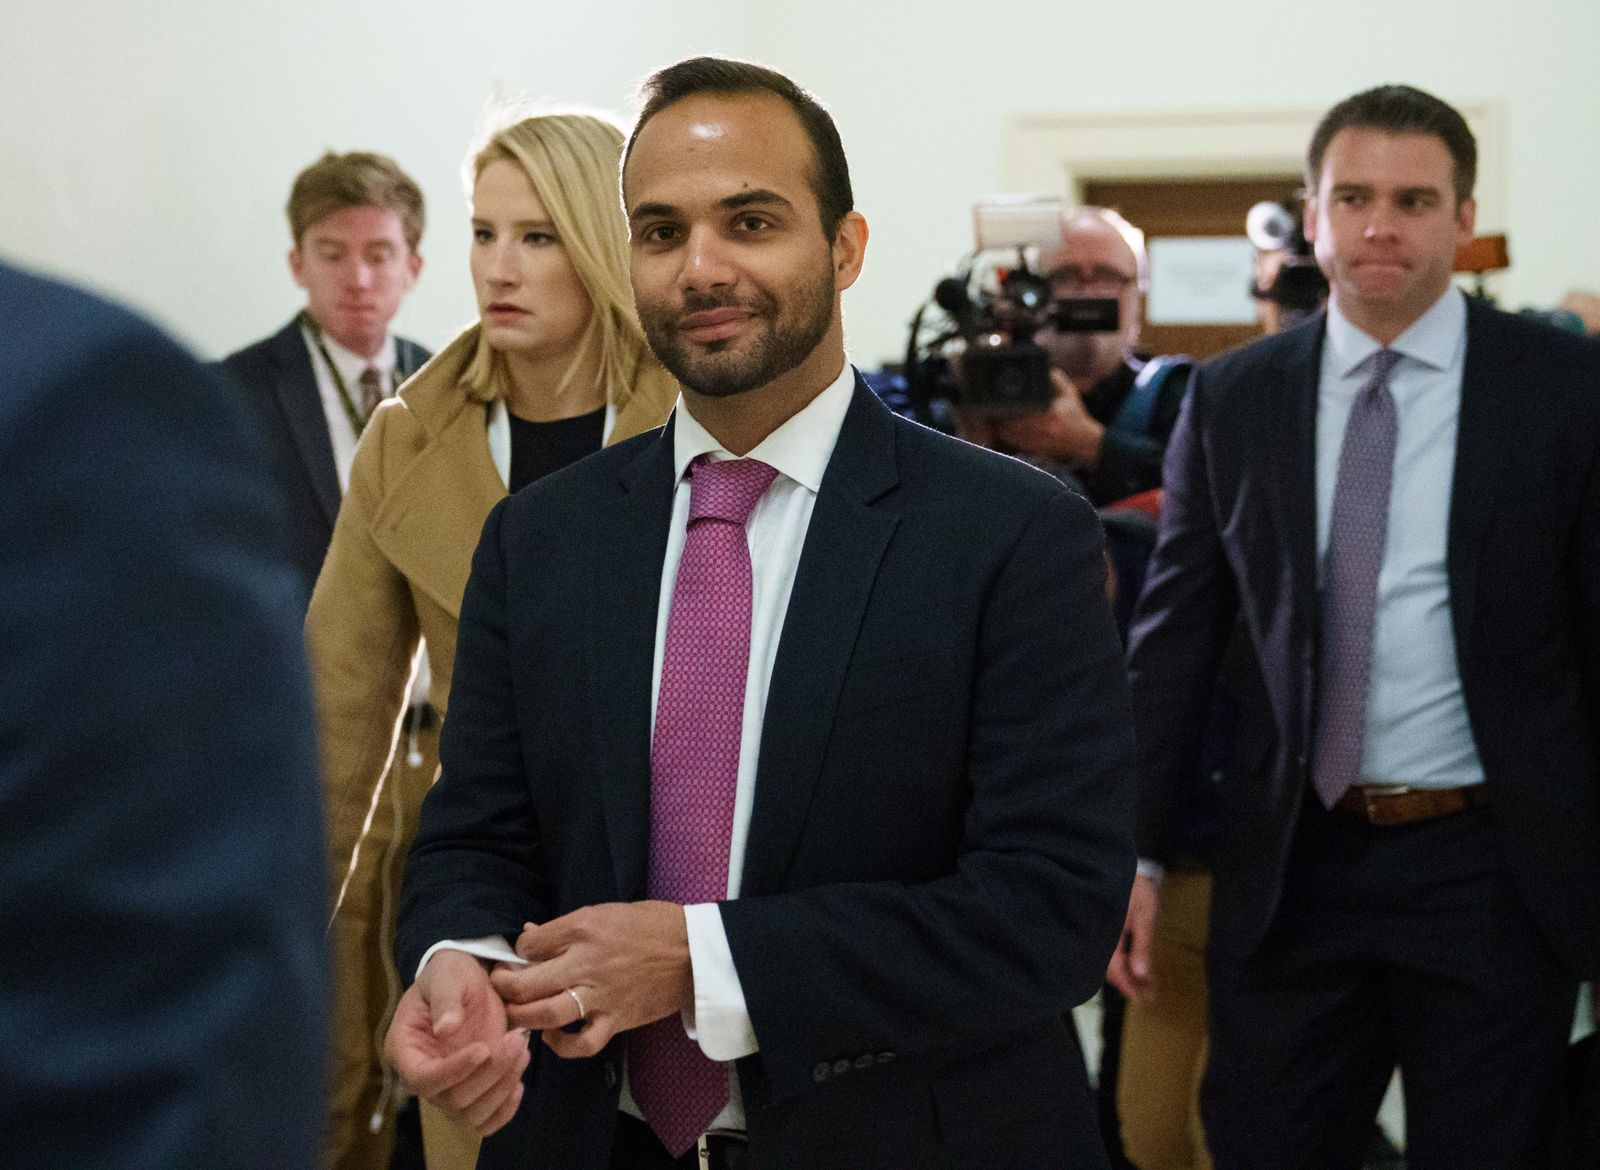 FILE - In this Oct. 25, 2018, file photo, George Papadopoulos, the former Trump campaign adviser who triggered the Russia investigation, arrives for his first appearance before congressional investigators, on Capitol Hill in Washington. (AP Photo/Carolyn Kaster, File)